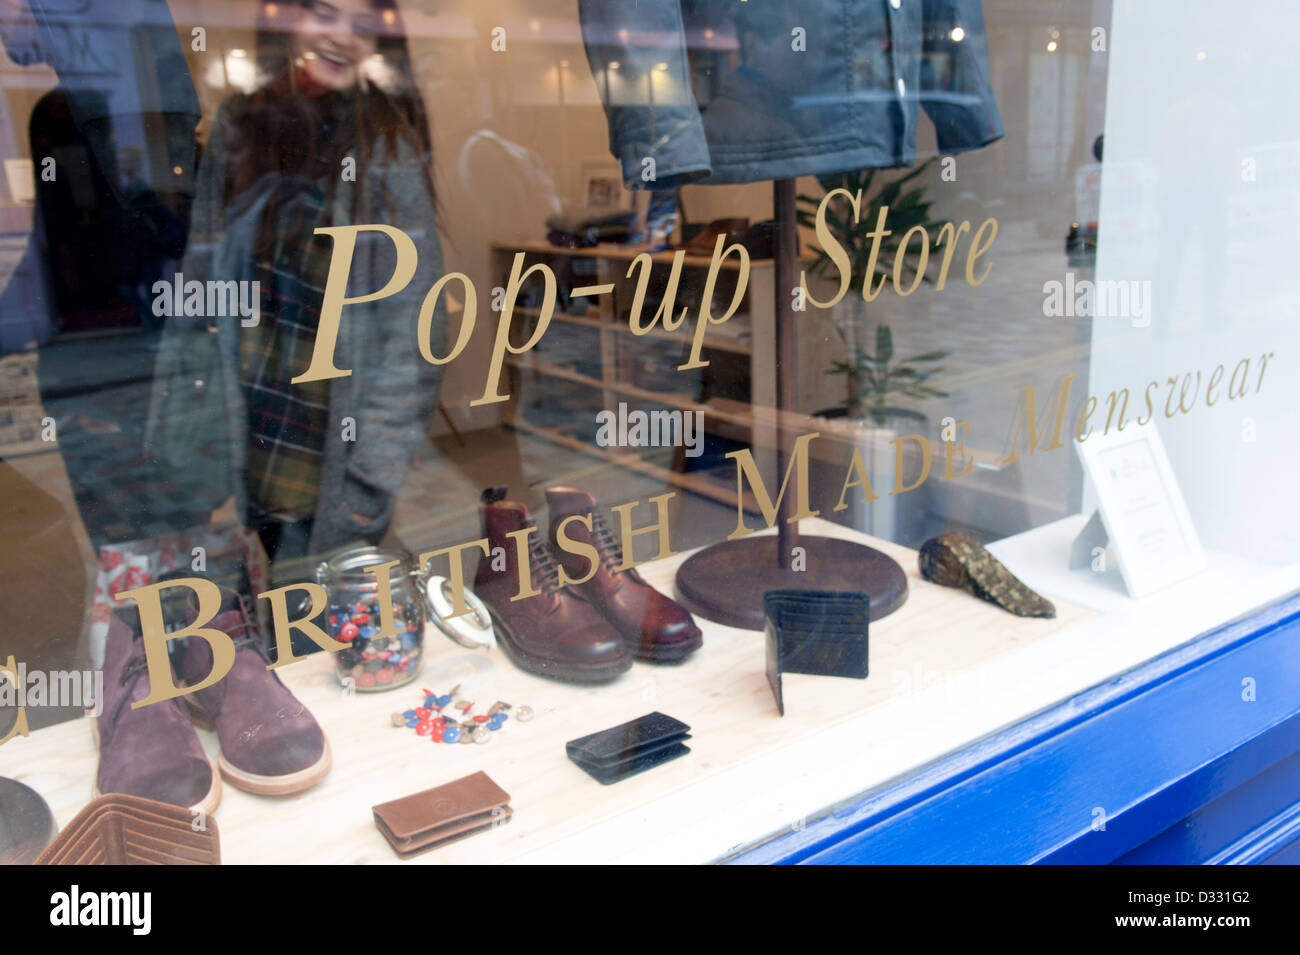 Pop up store vitrine, London, England, UK Photo Stock